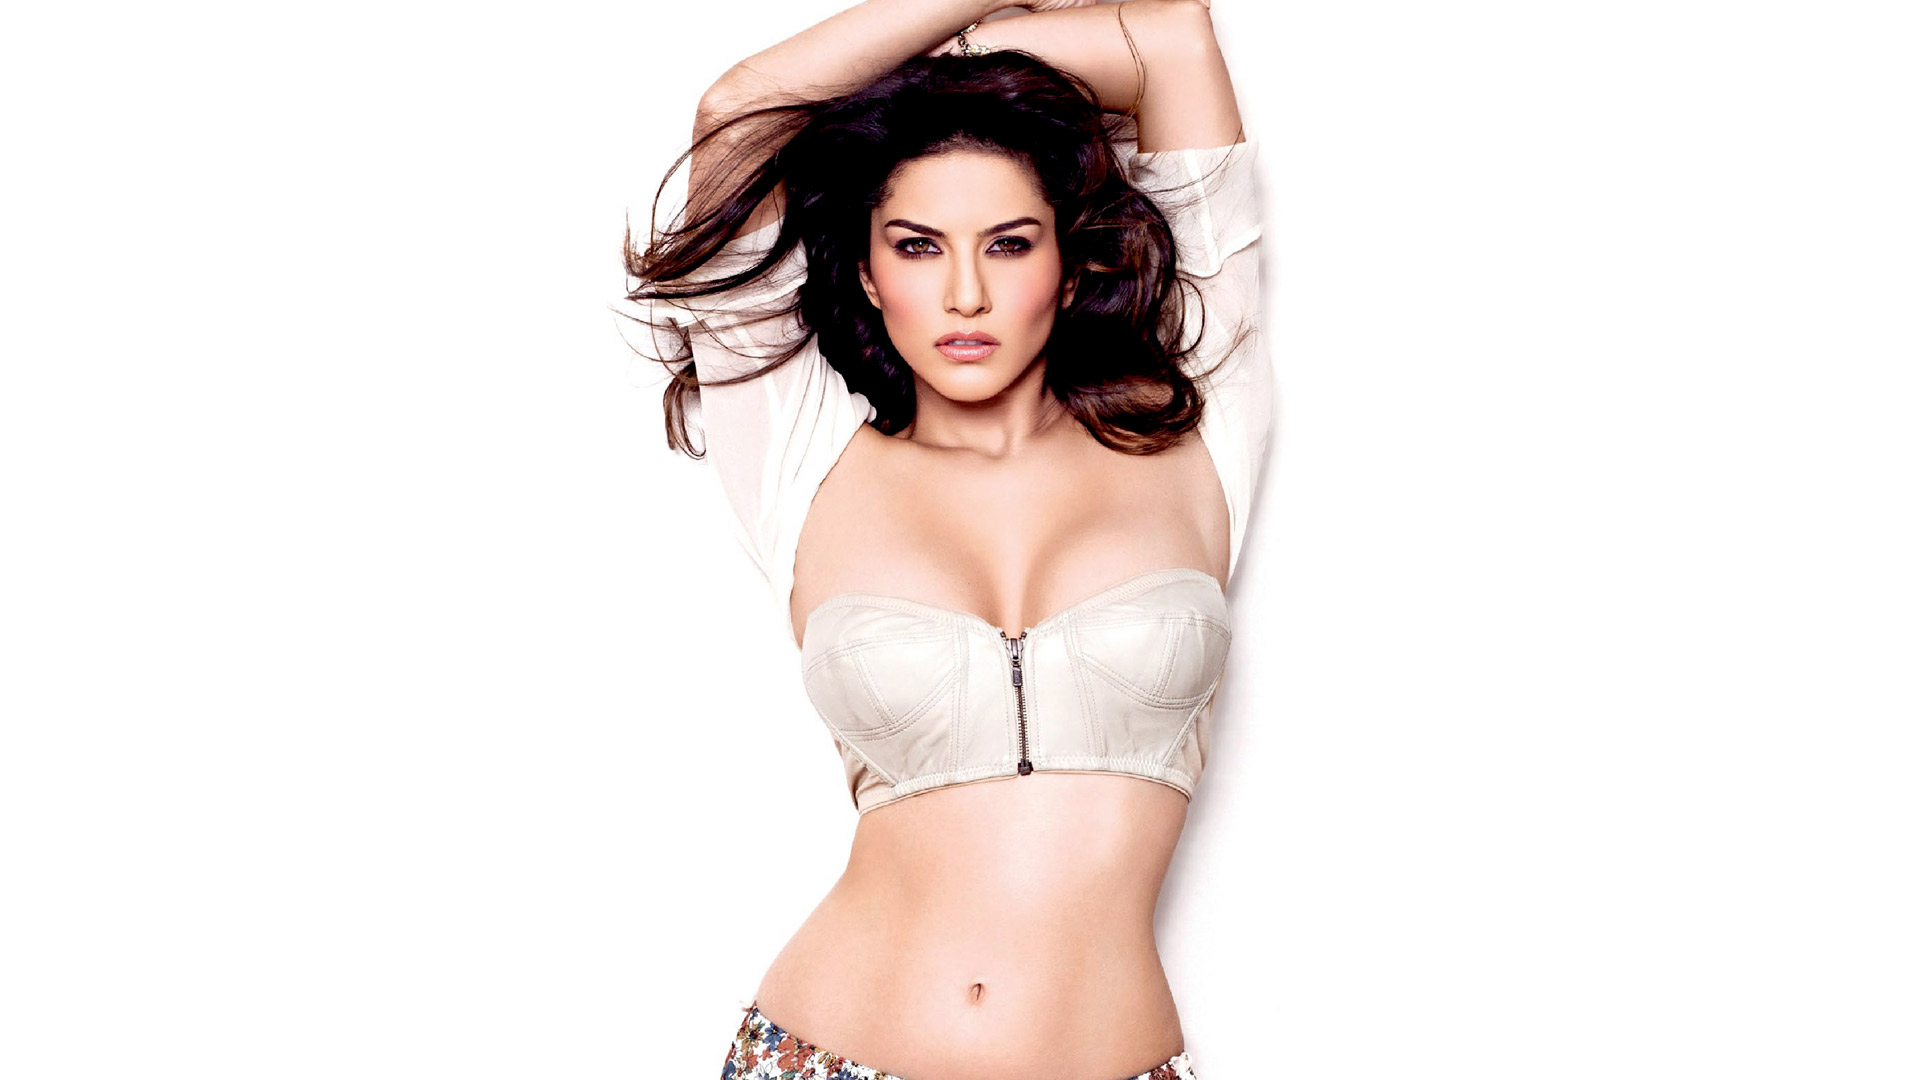 Cute Minions Wallpaper Quotes Sunny Leone Stunning Cleavage Latest Wallpapers Popopics Com